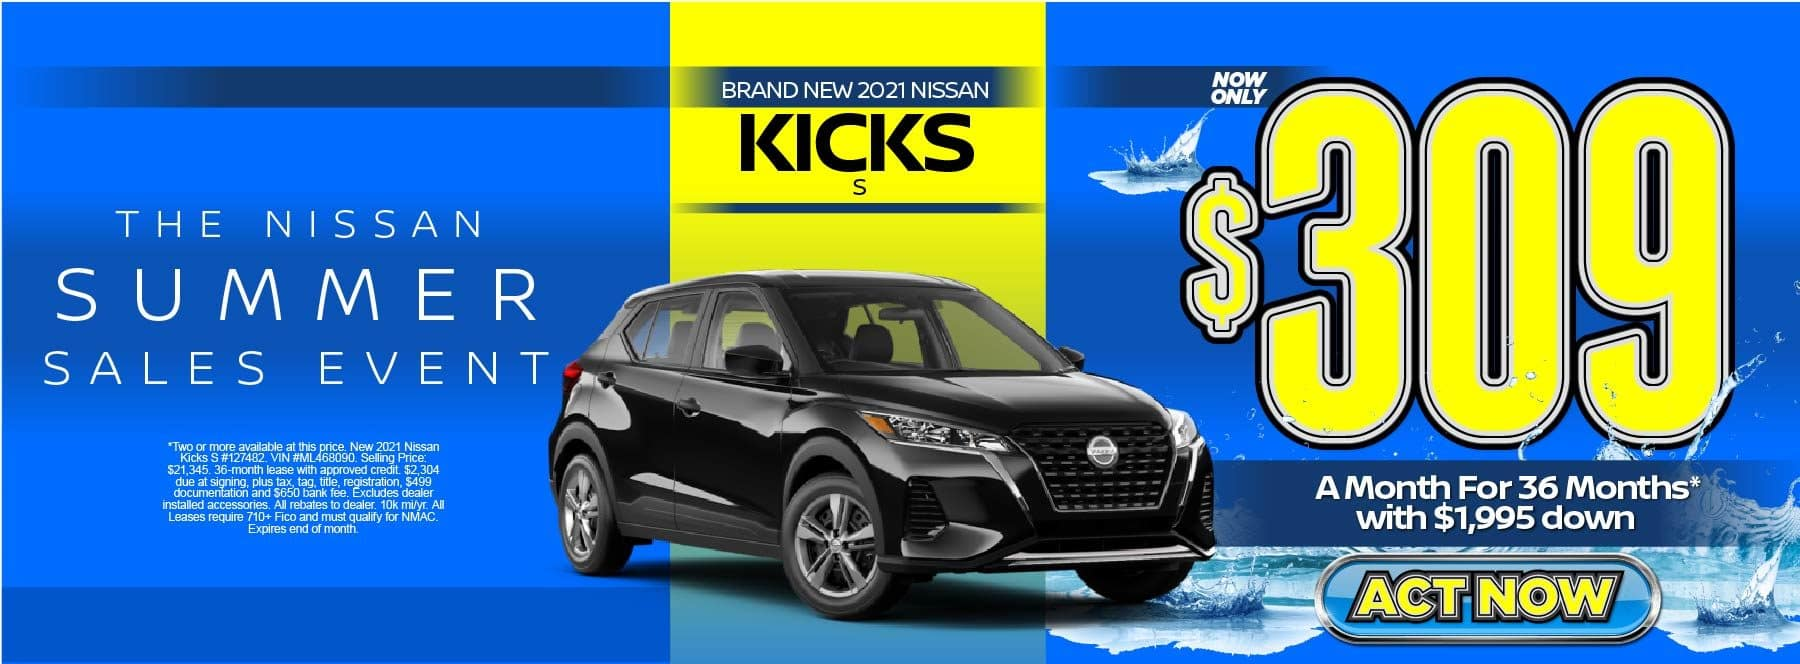 New 2021 Nissan Kicks S – Lease for $309/mo for 36 months with $1,995 Down* Act now.